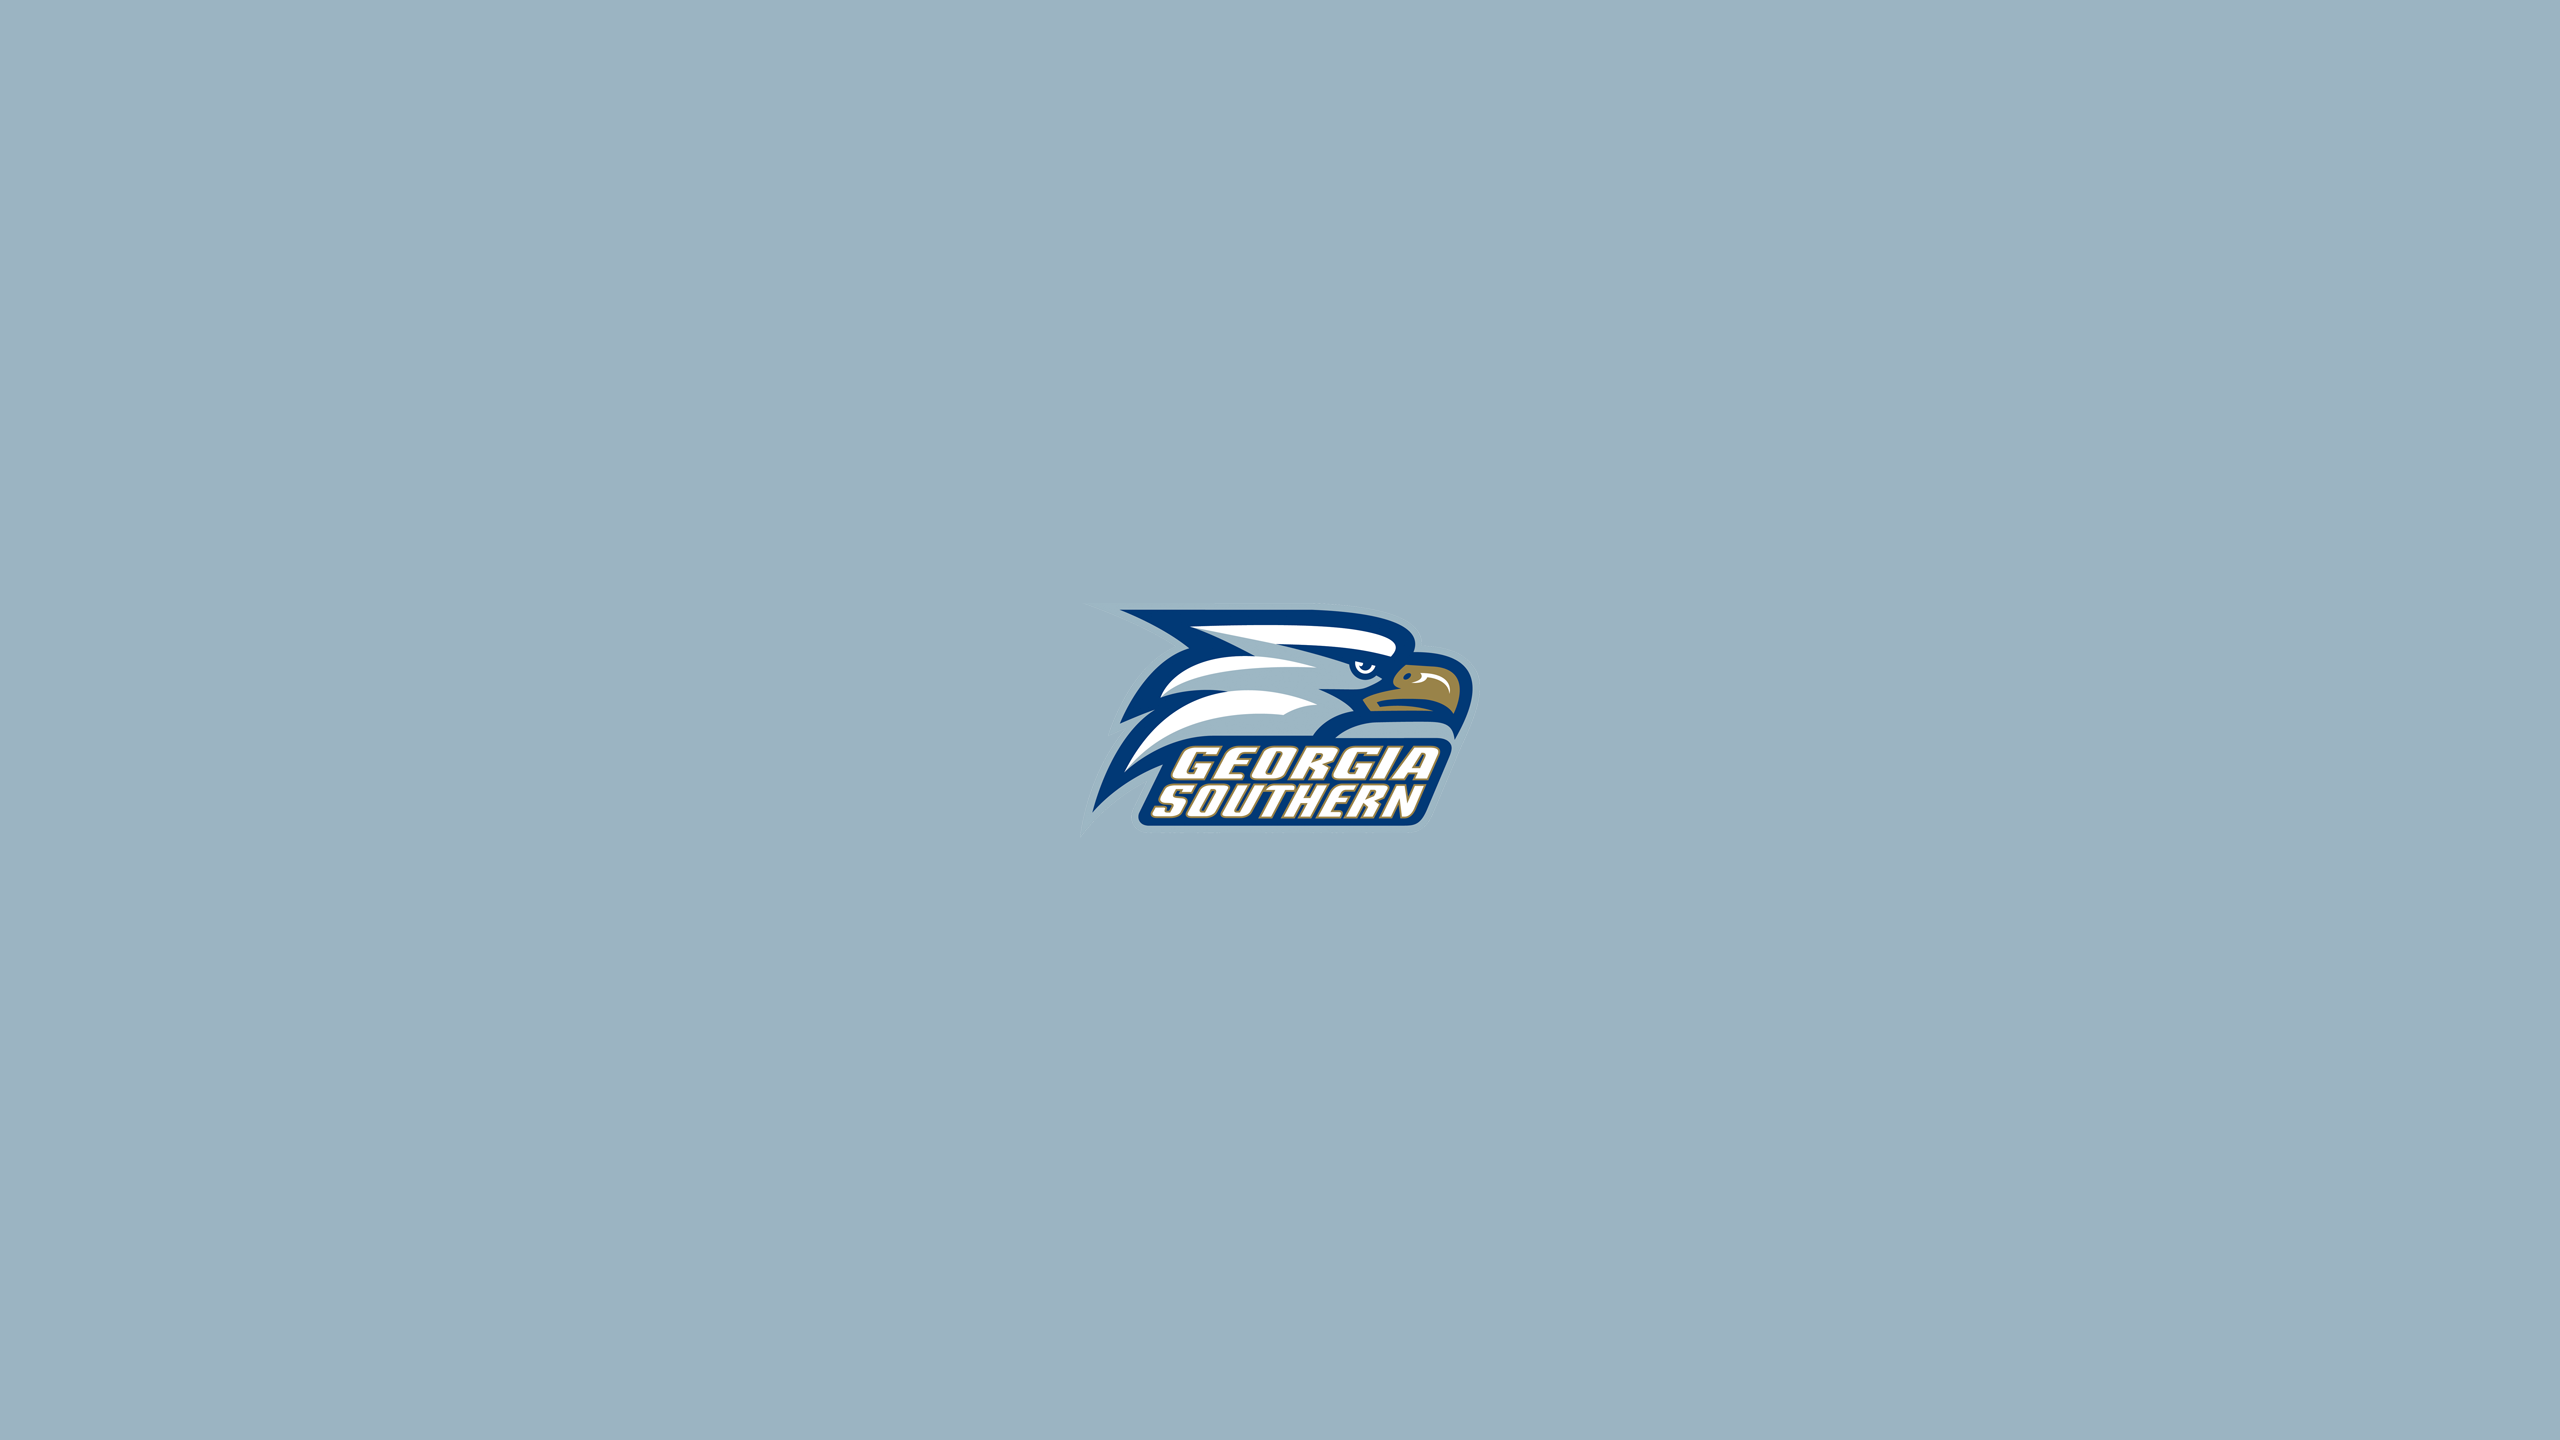 Georgia Southern University Eagles